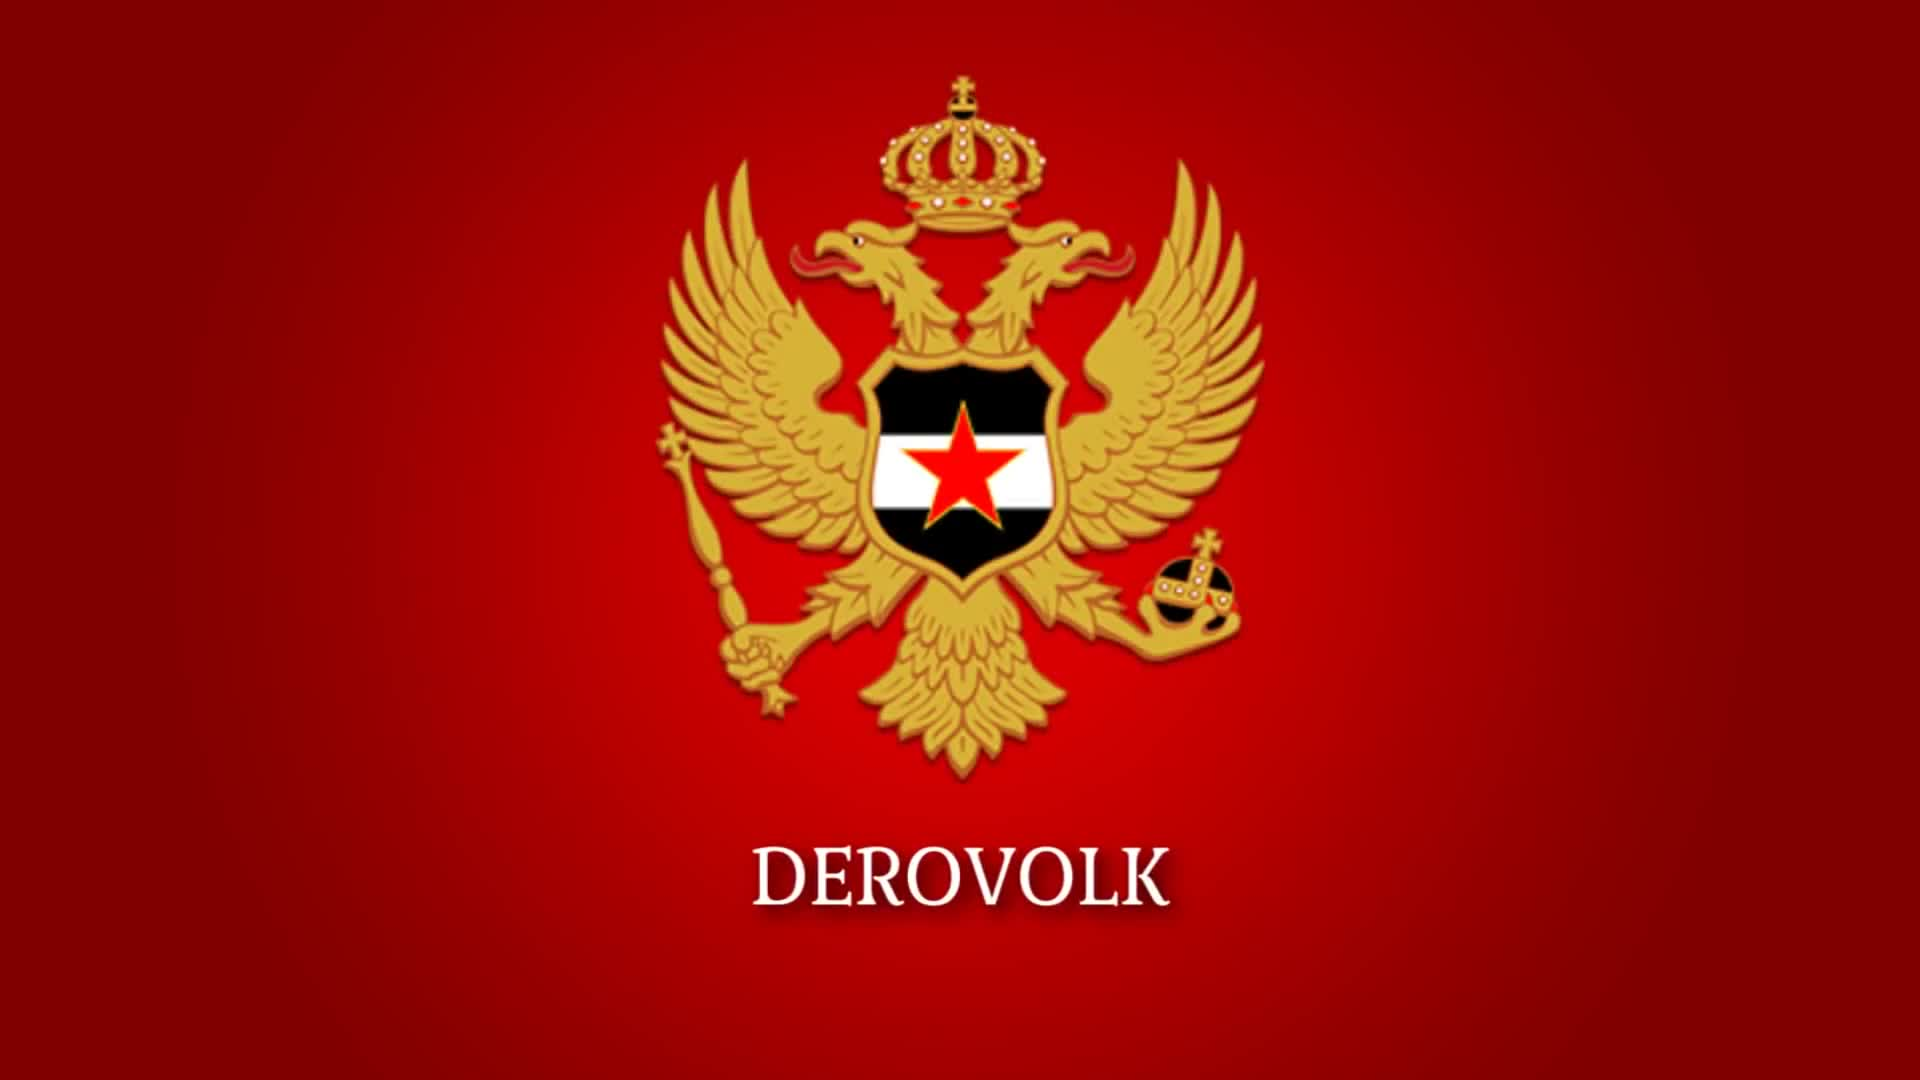 National Anthem of the III Reich (1933-1945) -Horst Wessel Lied